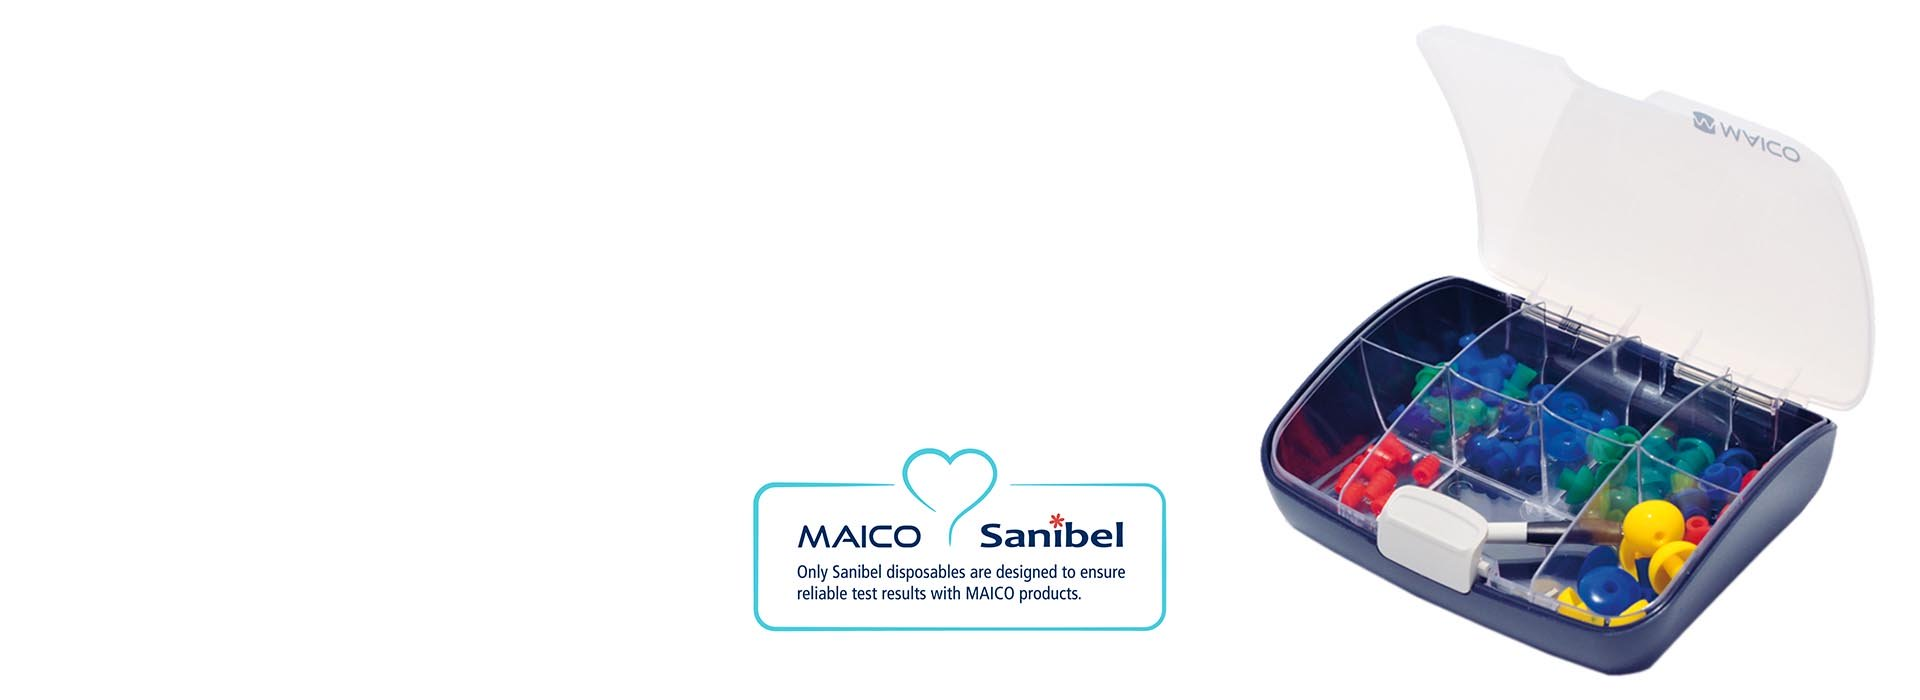 Sanibel disposables for MAICO devices